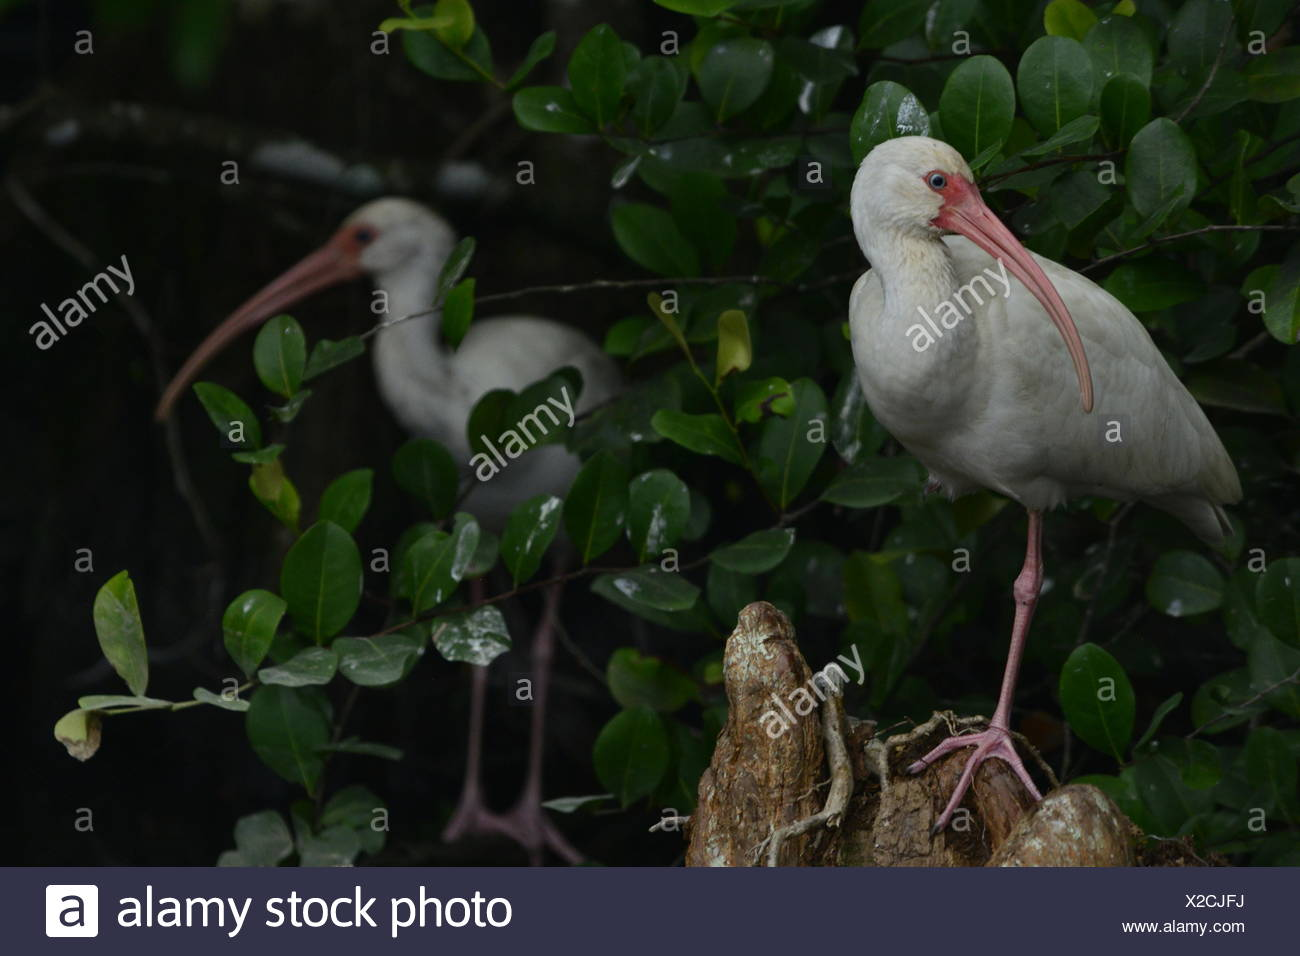 A pair of white ibis standing amid foliage. - Stock Image